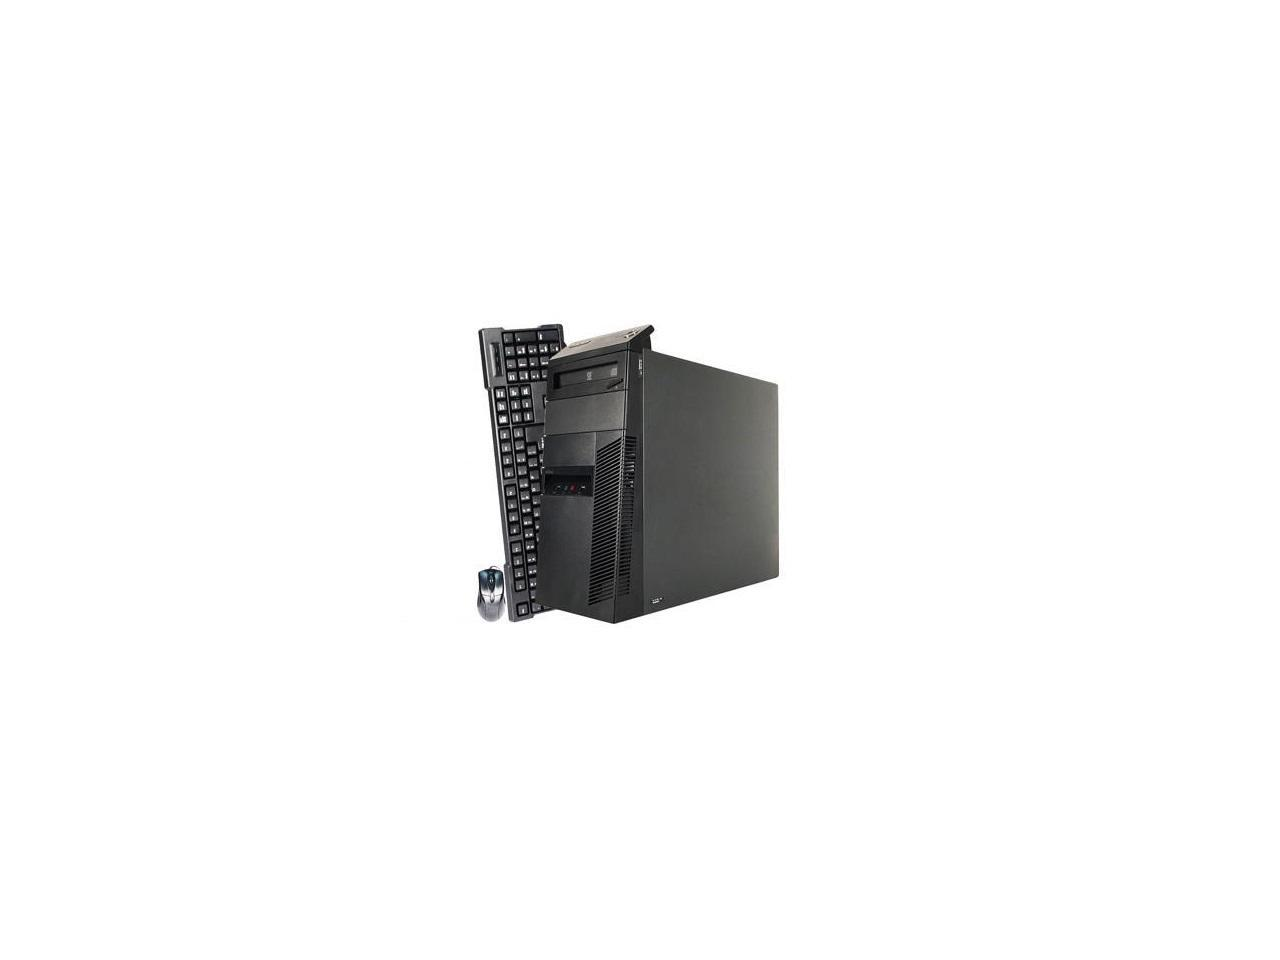 Refurbished: Lenovo Desktop Computer M91 Intel Core i5 2nd Gen 2400 (3.10 GHz) 4 GB DDR3 1 TB HDD Intel HD Graphics 2000 Windows 10 Pro 64-Bit